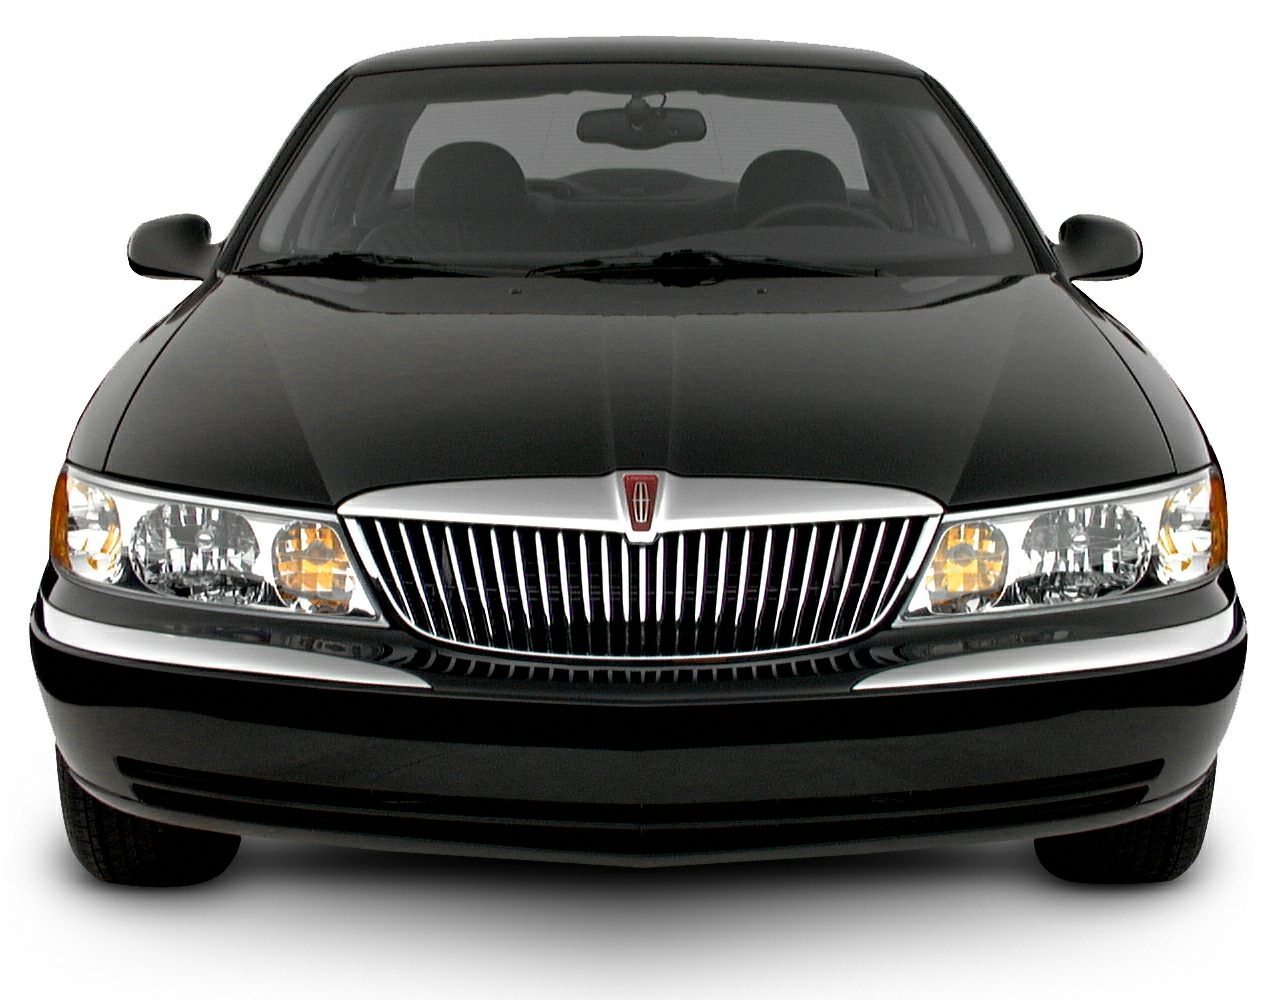 2000 Lincoln Continental Exterior Photo